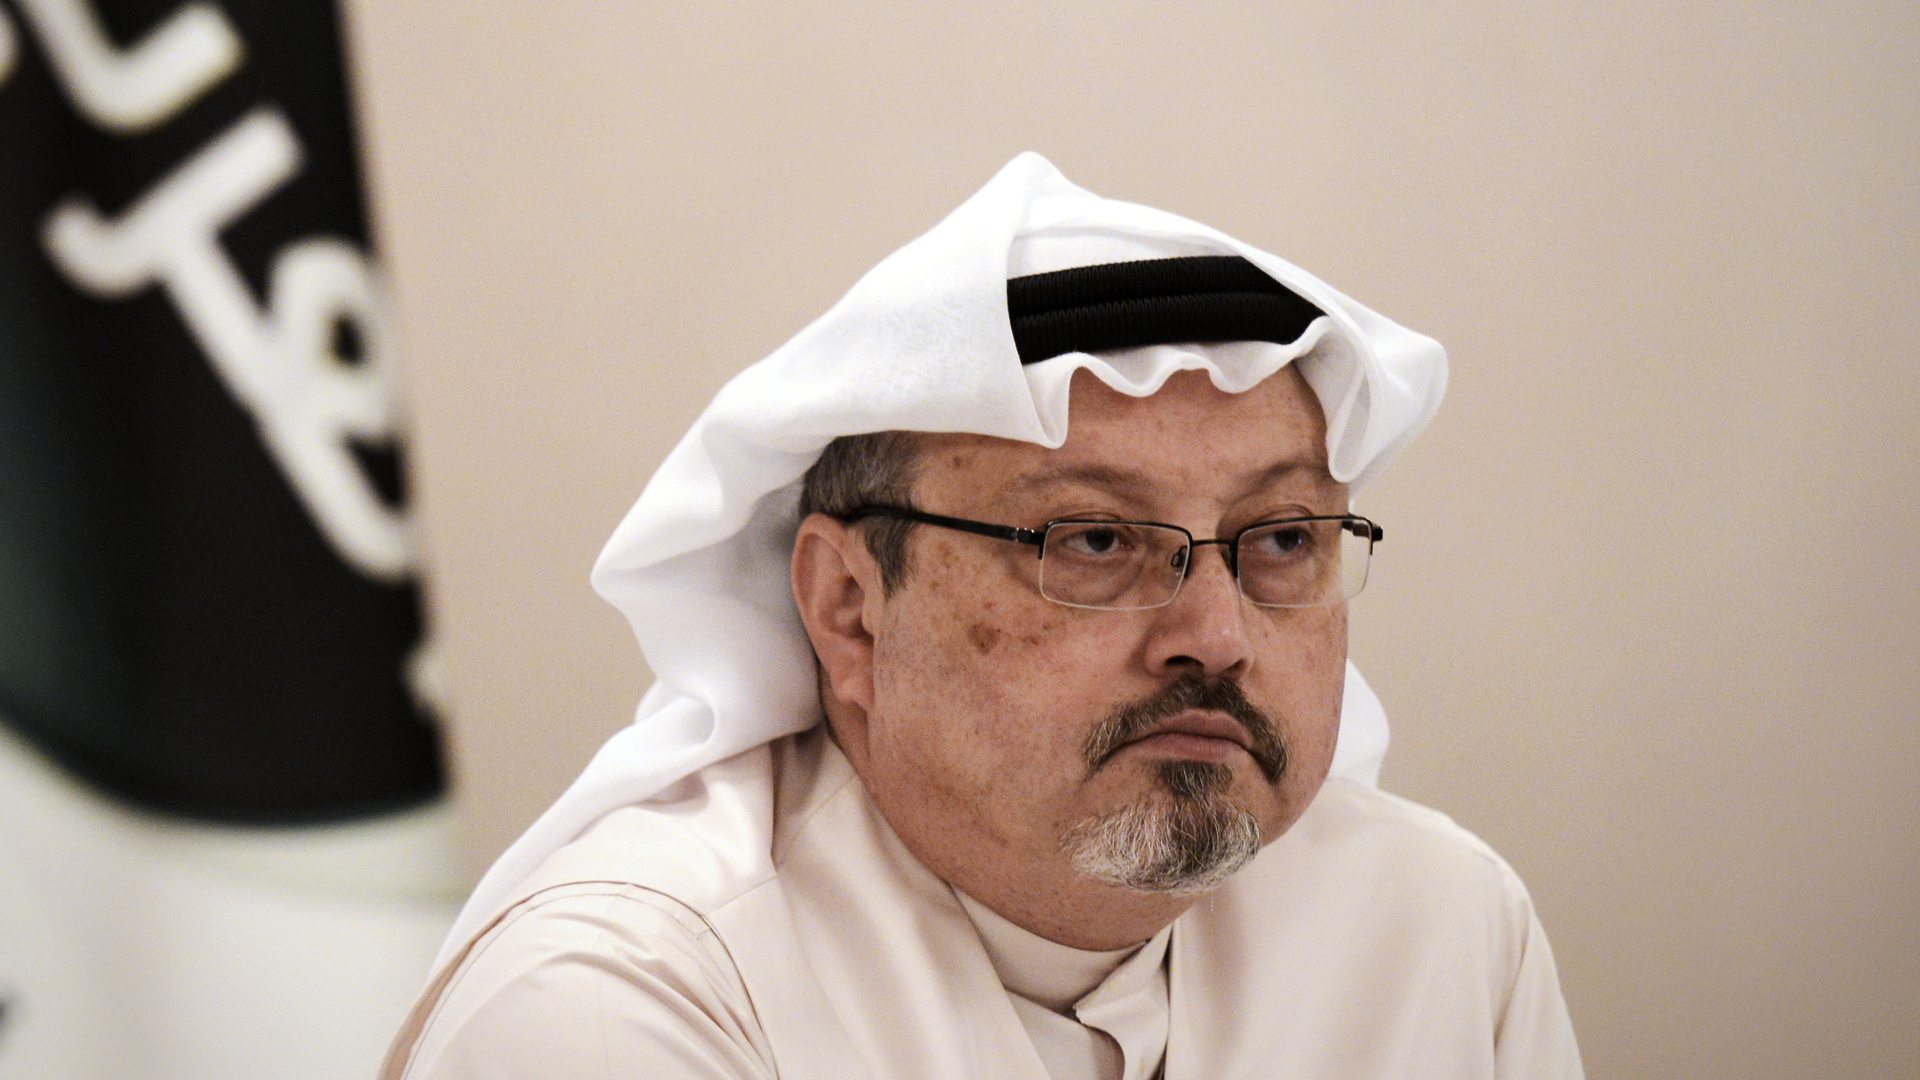 Jamal Khashoggi looks on during a press conference in Bahraini on Dec. 15, 2014. (Credit: Mohammed Al-Shaikh/AFP/Getty Images)